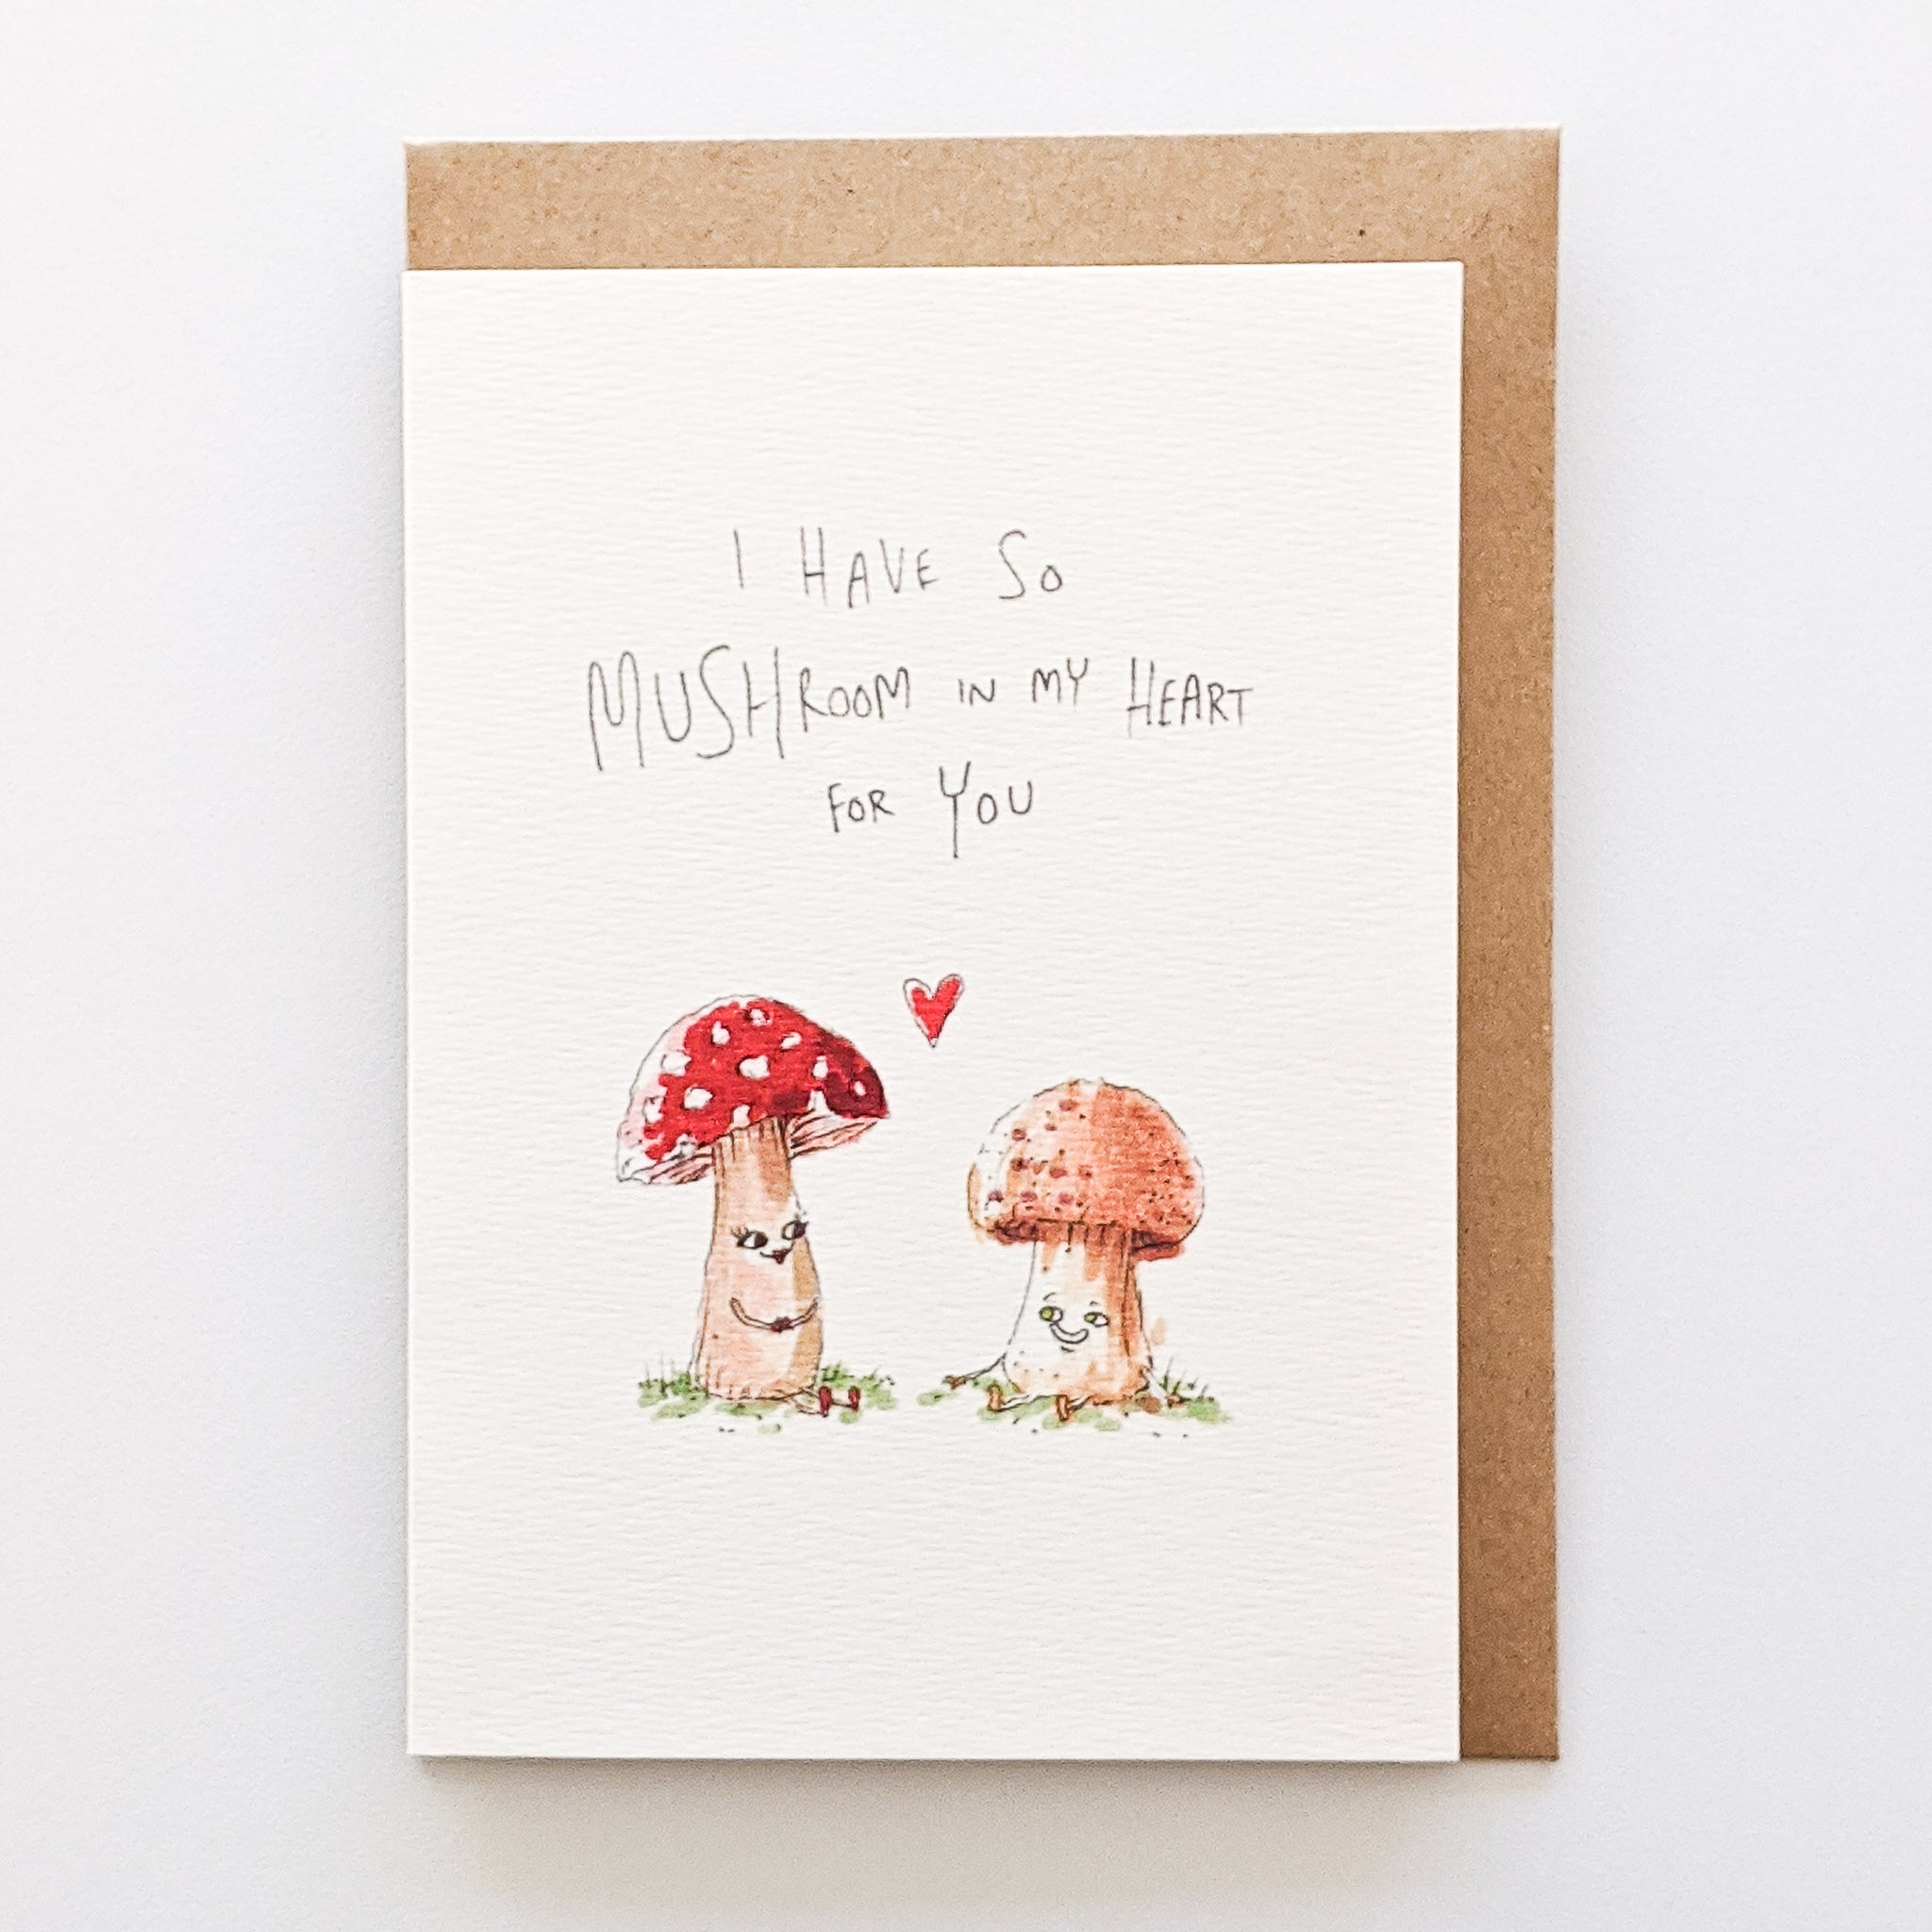 I Have So Mushroom In My Heart For You - Well Drawn